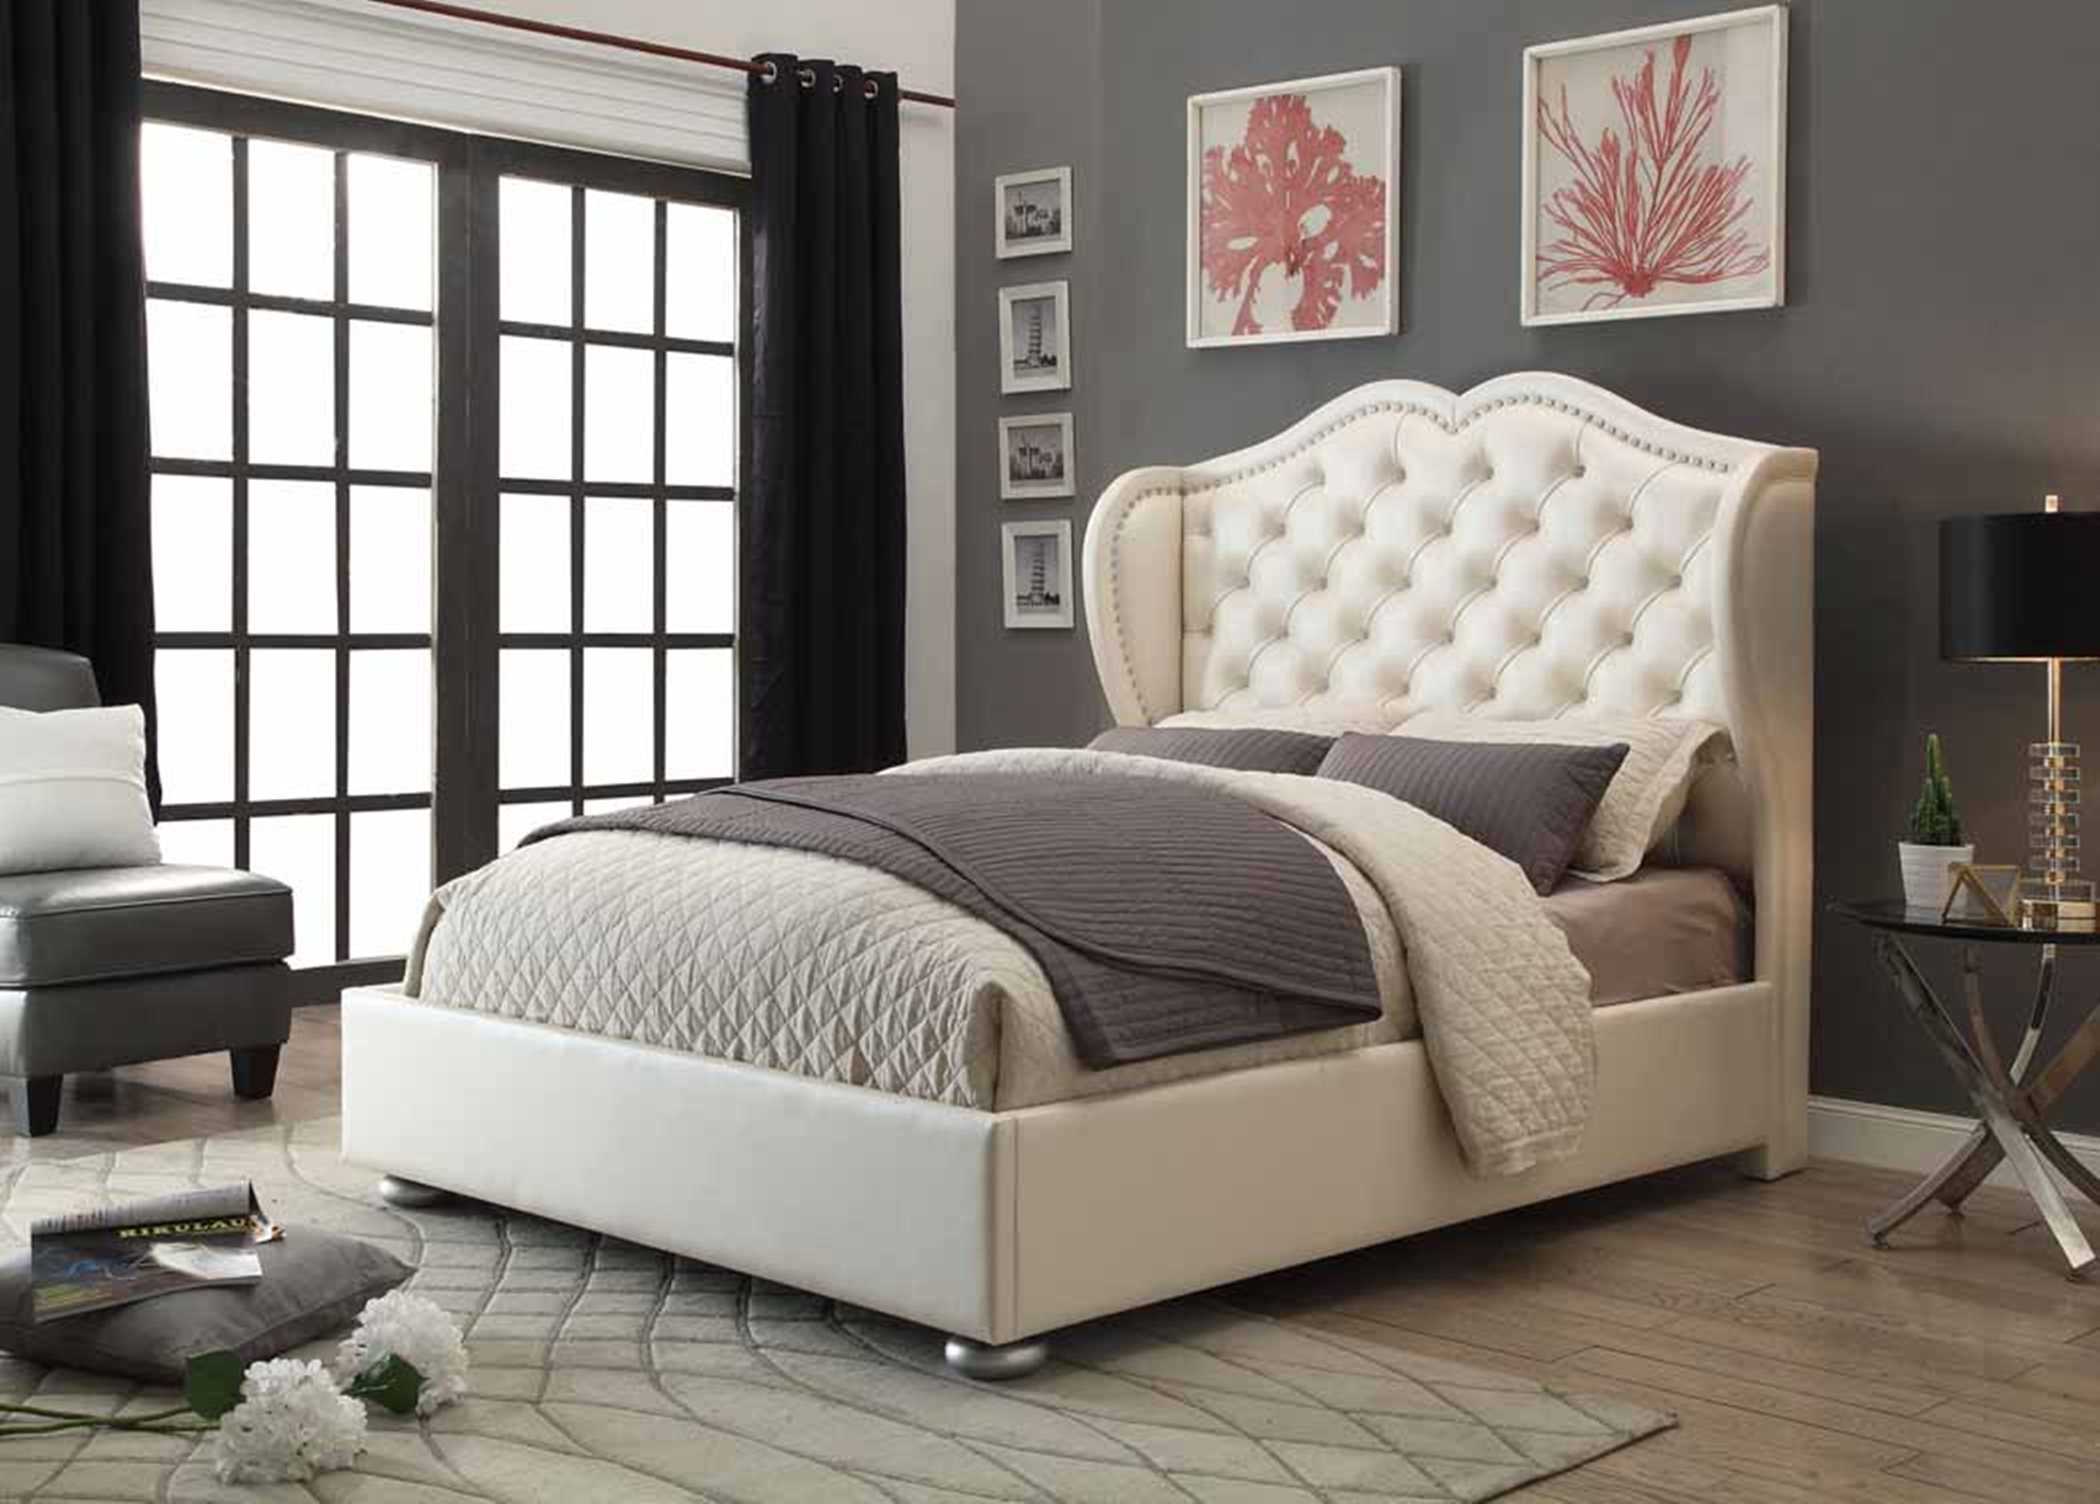 Clarice White Upholstered Queen Bed